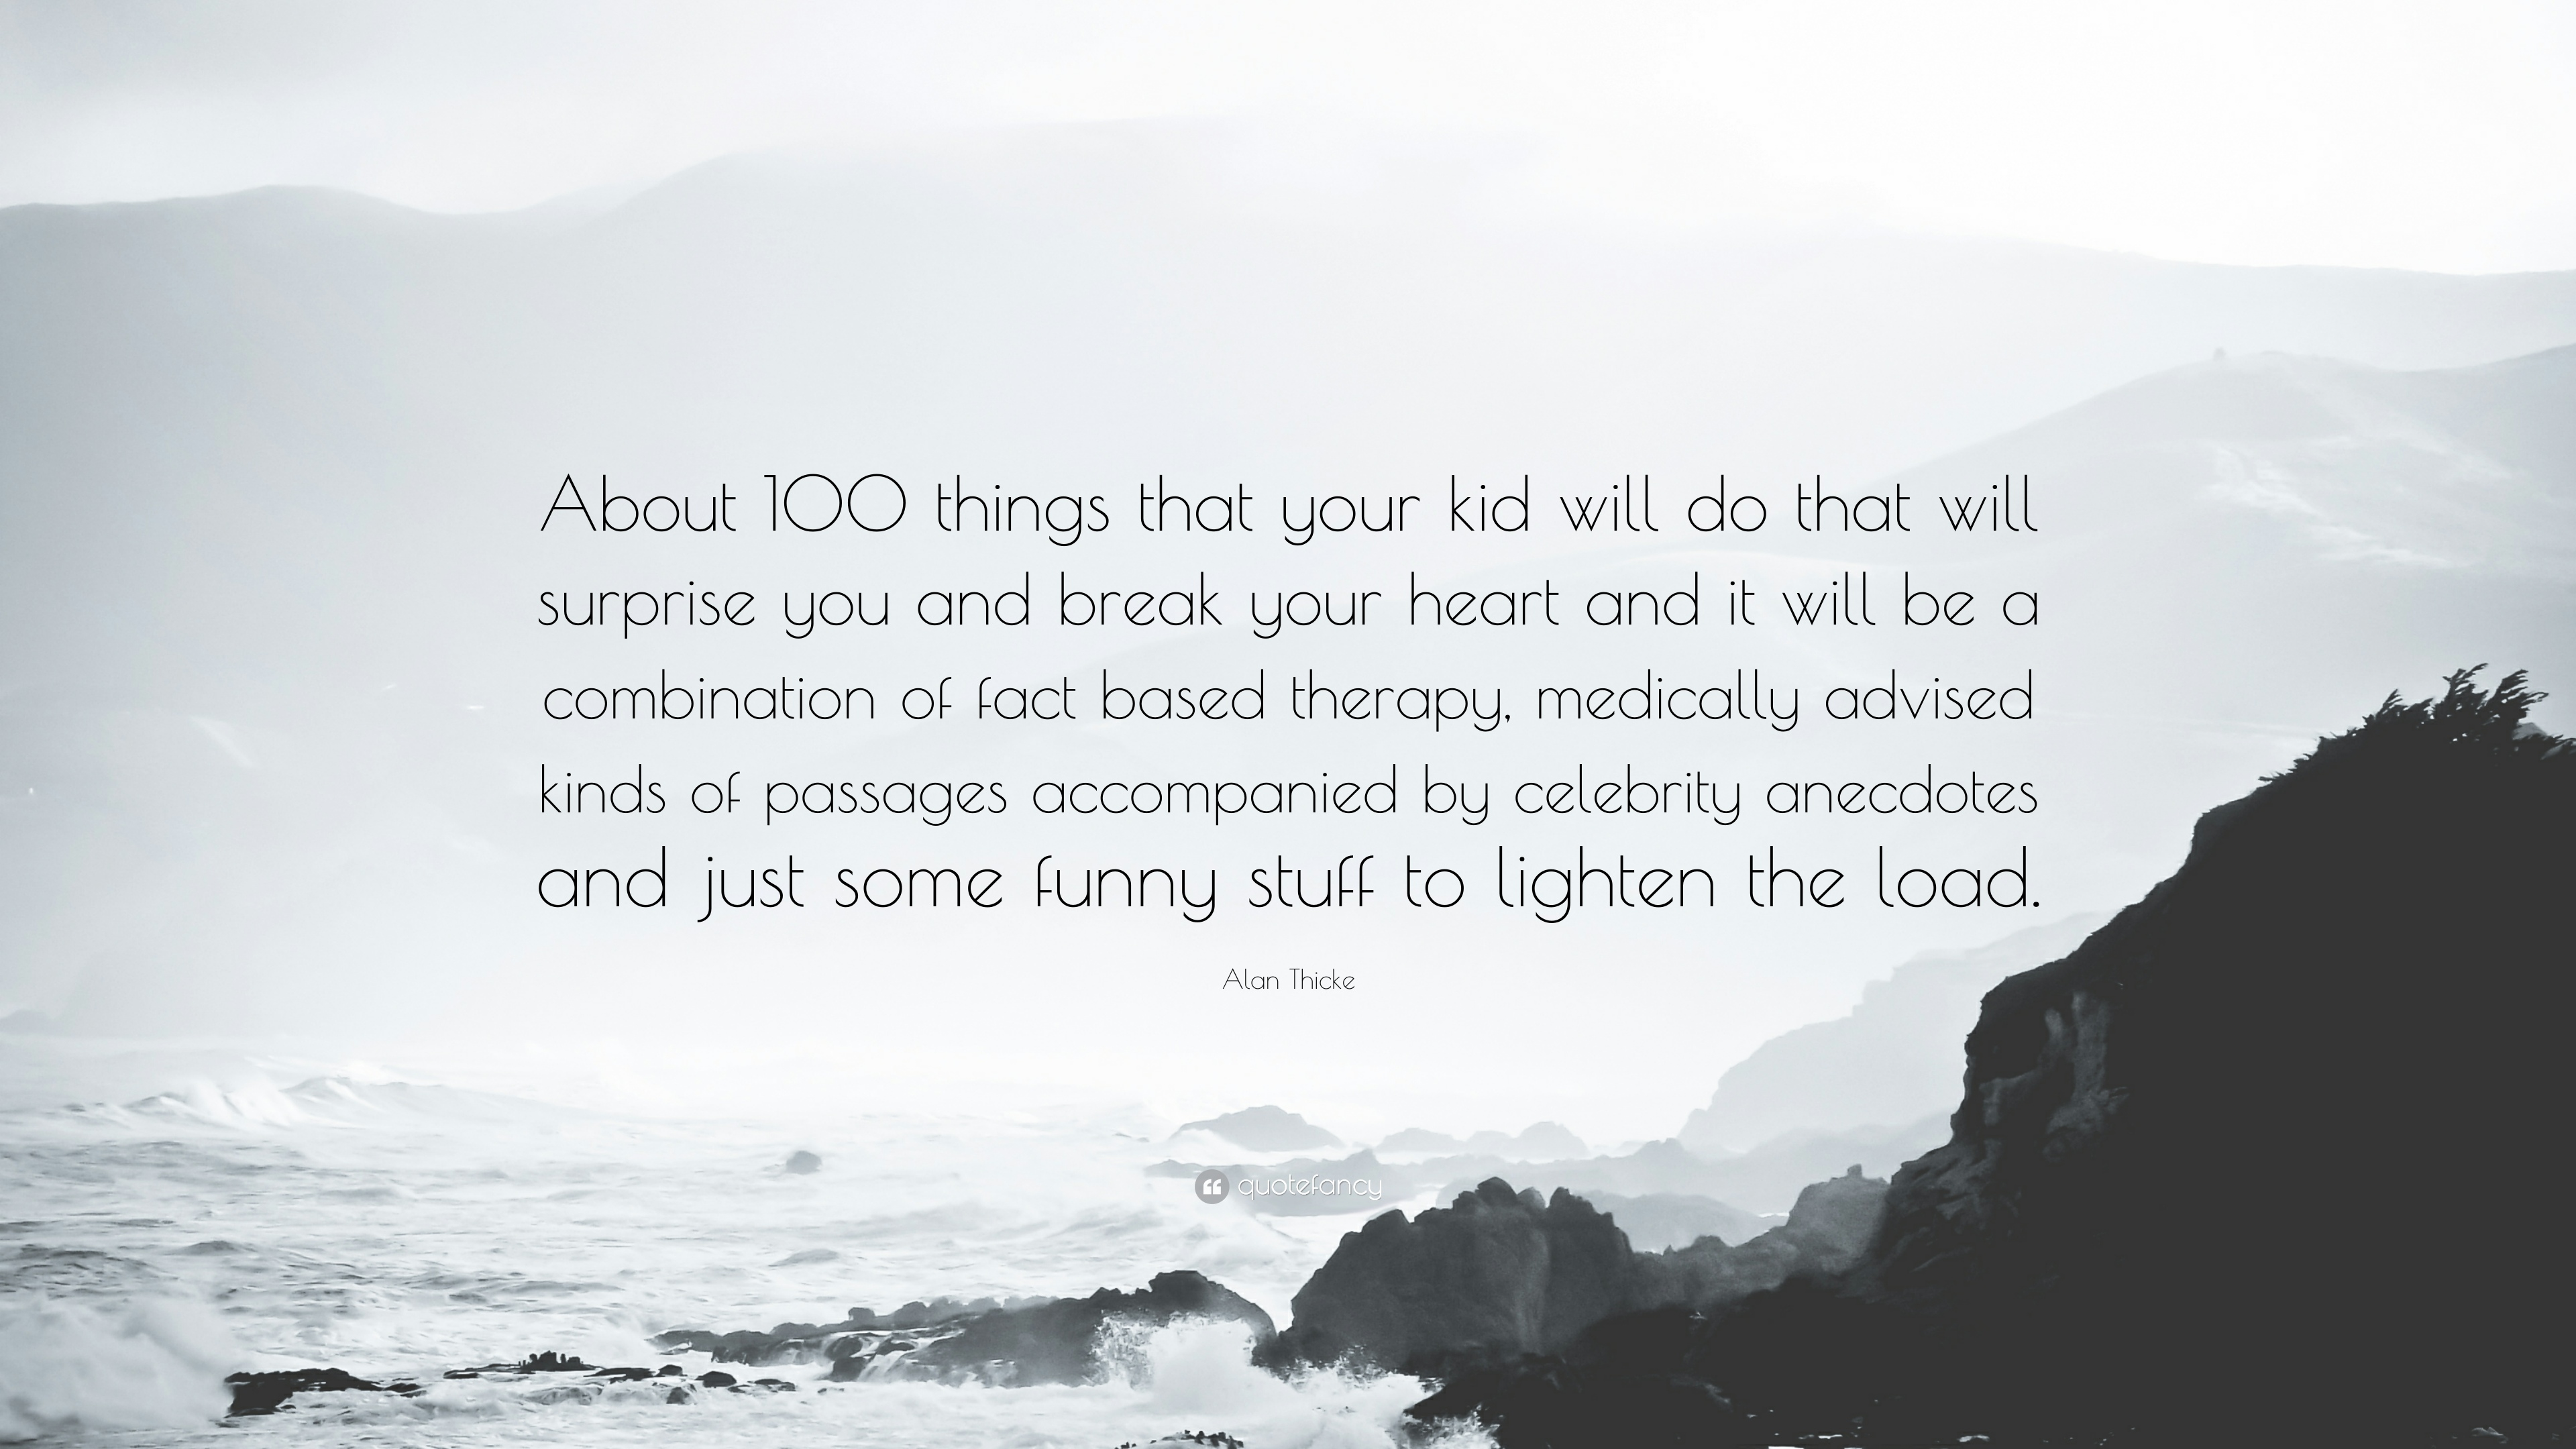 Alan Thicke Quote About 100 Things That Your Kid Will Do That Will